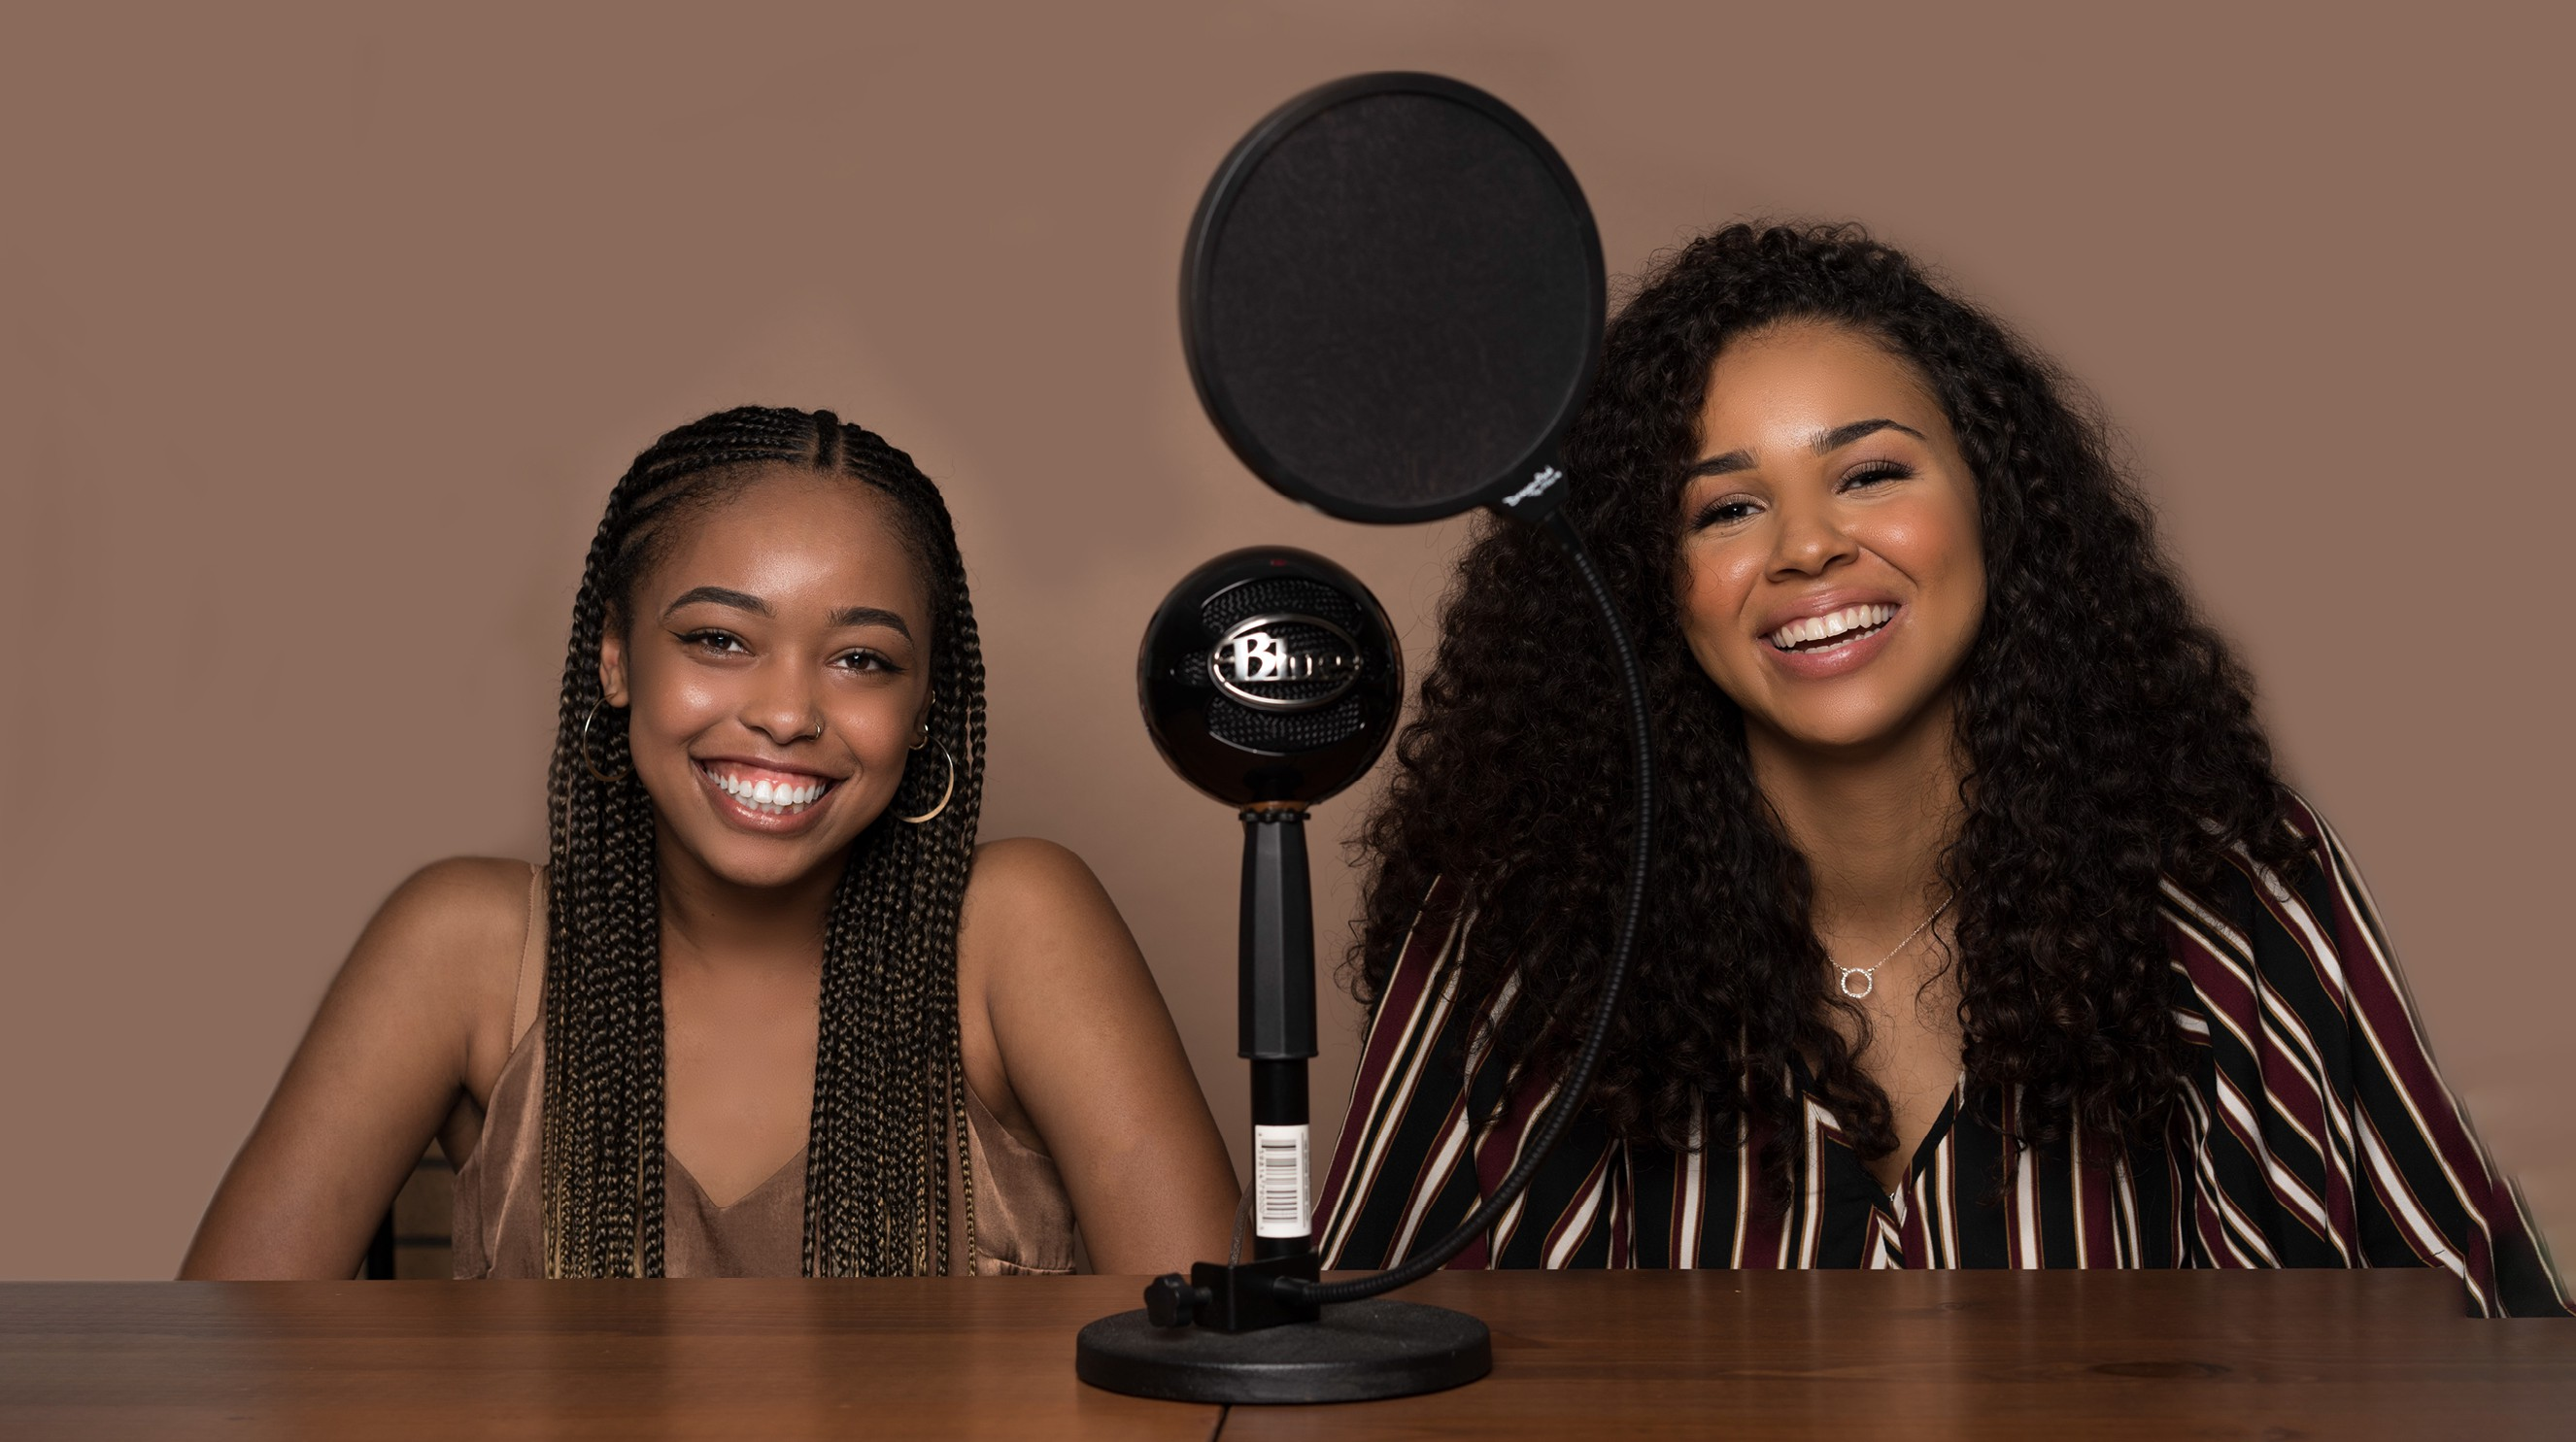 Sydney Charles and Tatum Larsen sit behind a wooden table smiling. On the table between the two of them is a microphone.